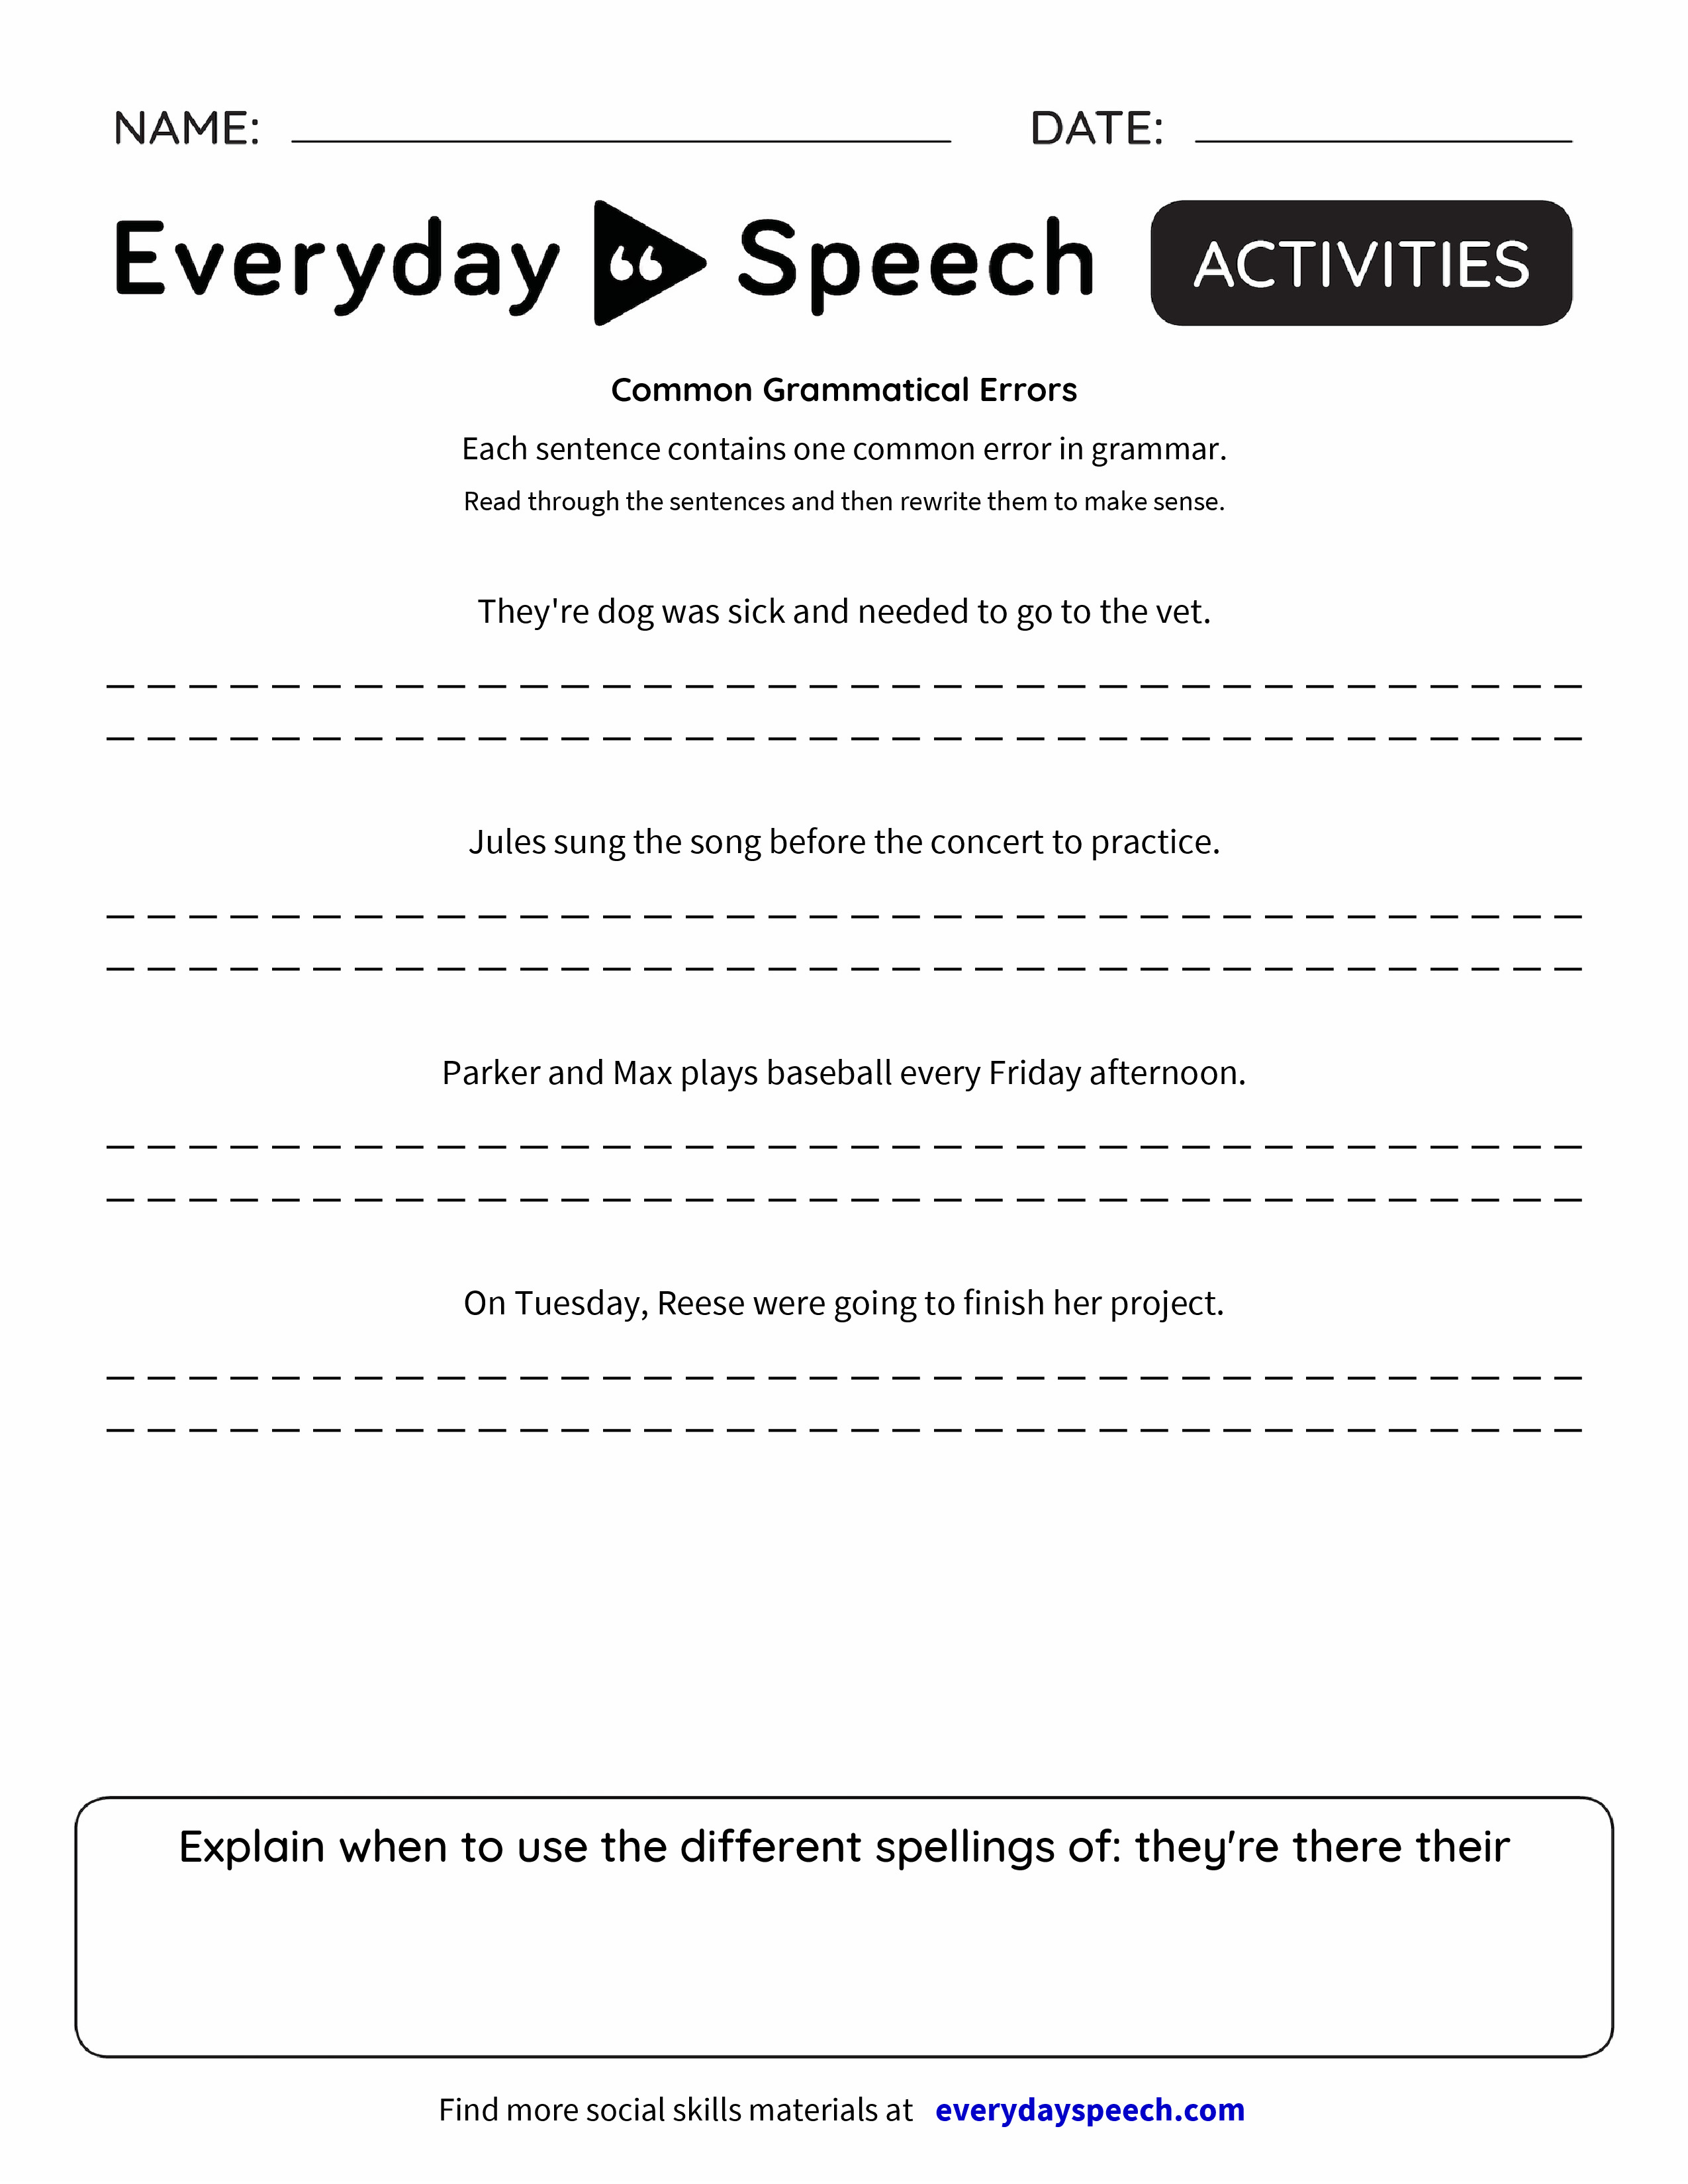 worksheet There Their And They Re Worksheet common grammatical errors everyday speech preview